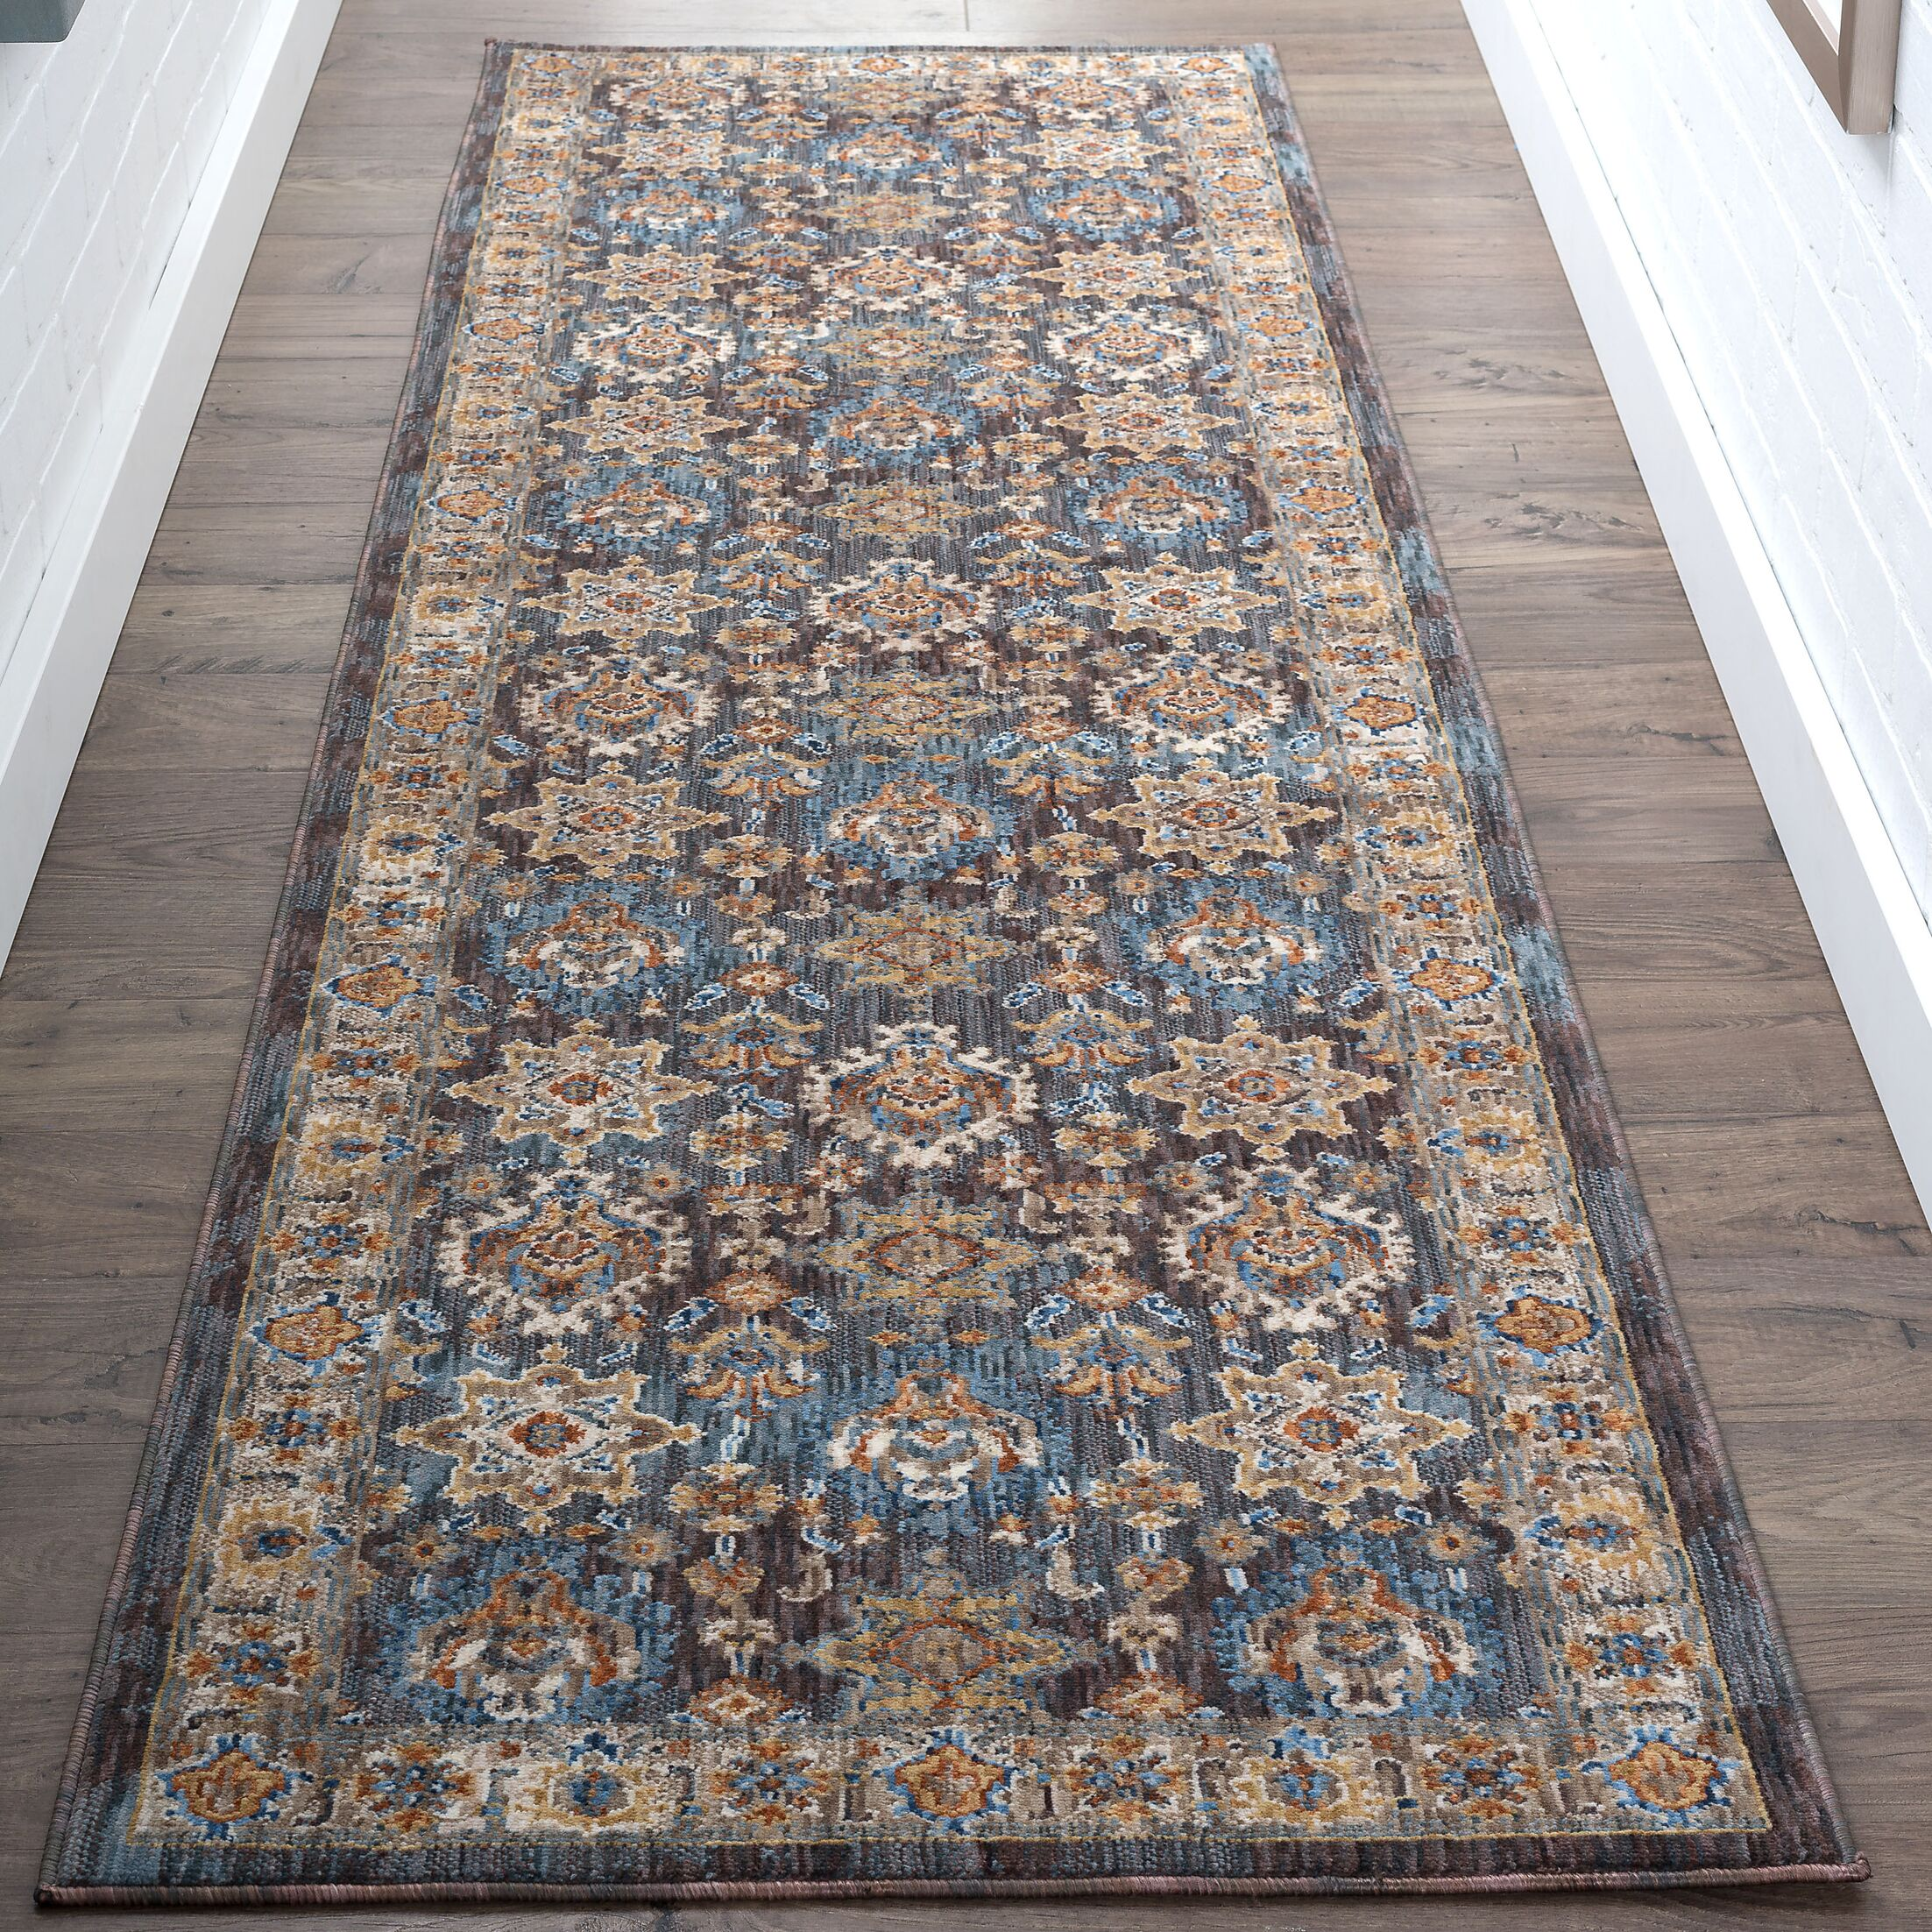 Matteson Traditional Brown/Blue Area Rug Rug Size: 2'3'' x 11'